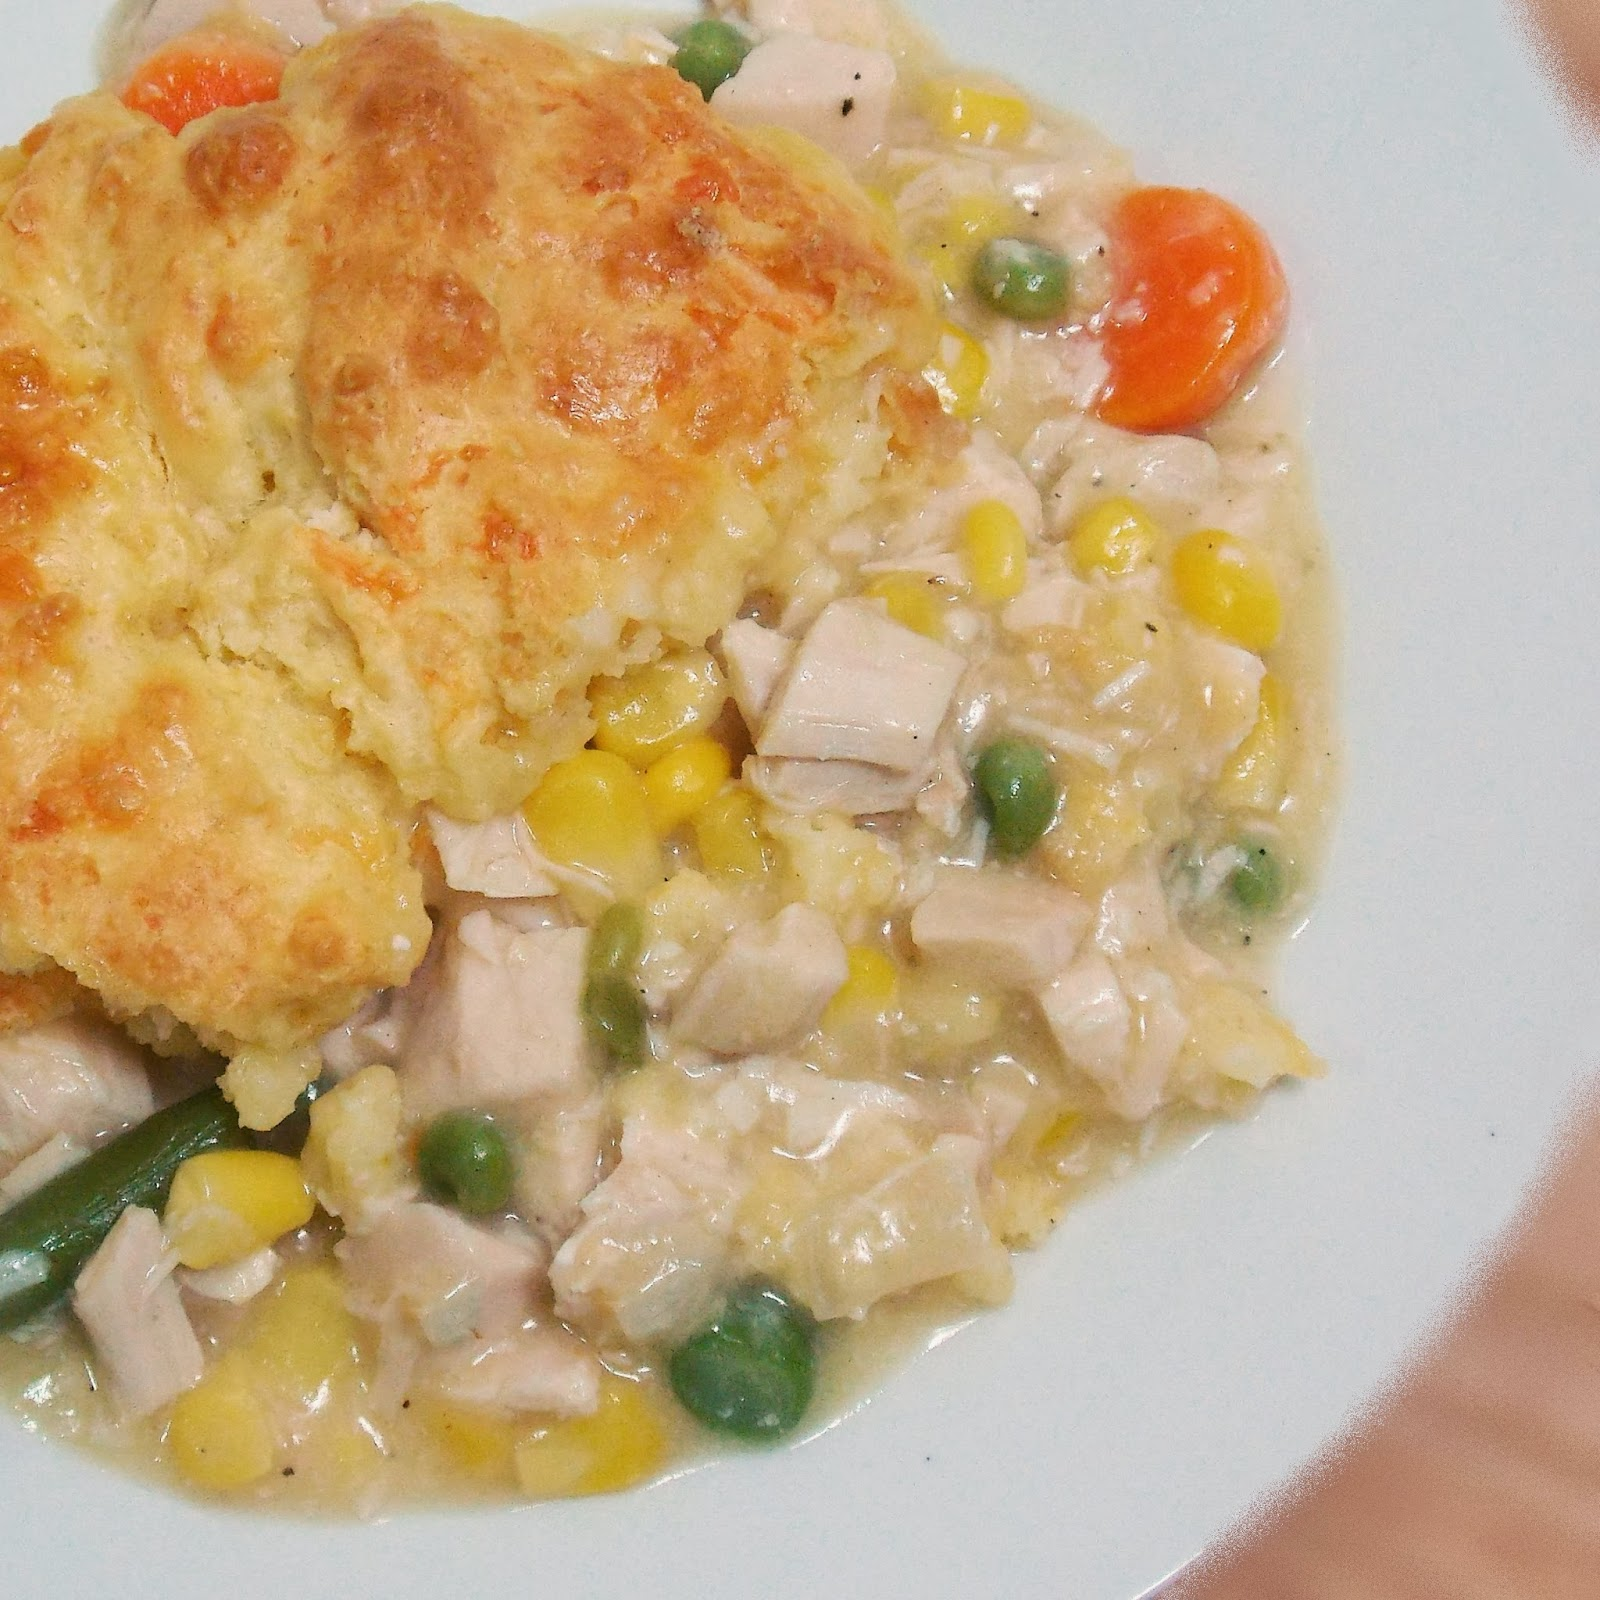 ... Daily Recipes.com | Leftover Turkey Pot Pie with Cheddar Biscuit Crust